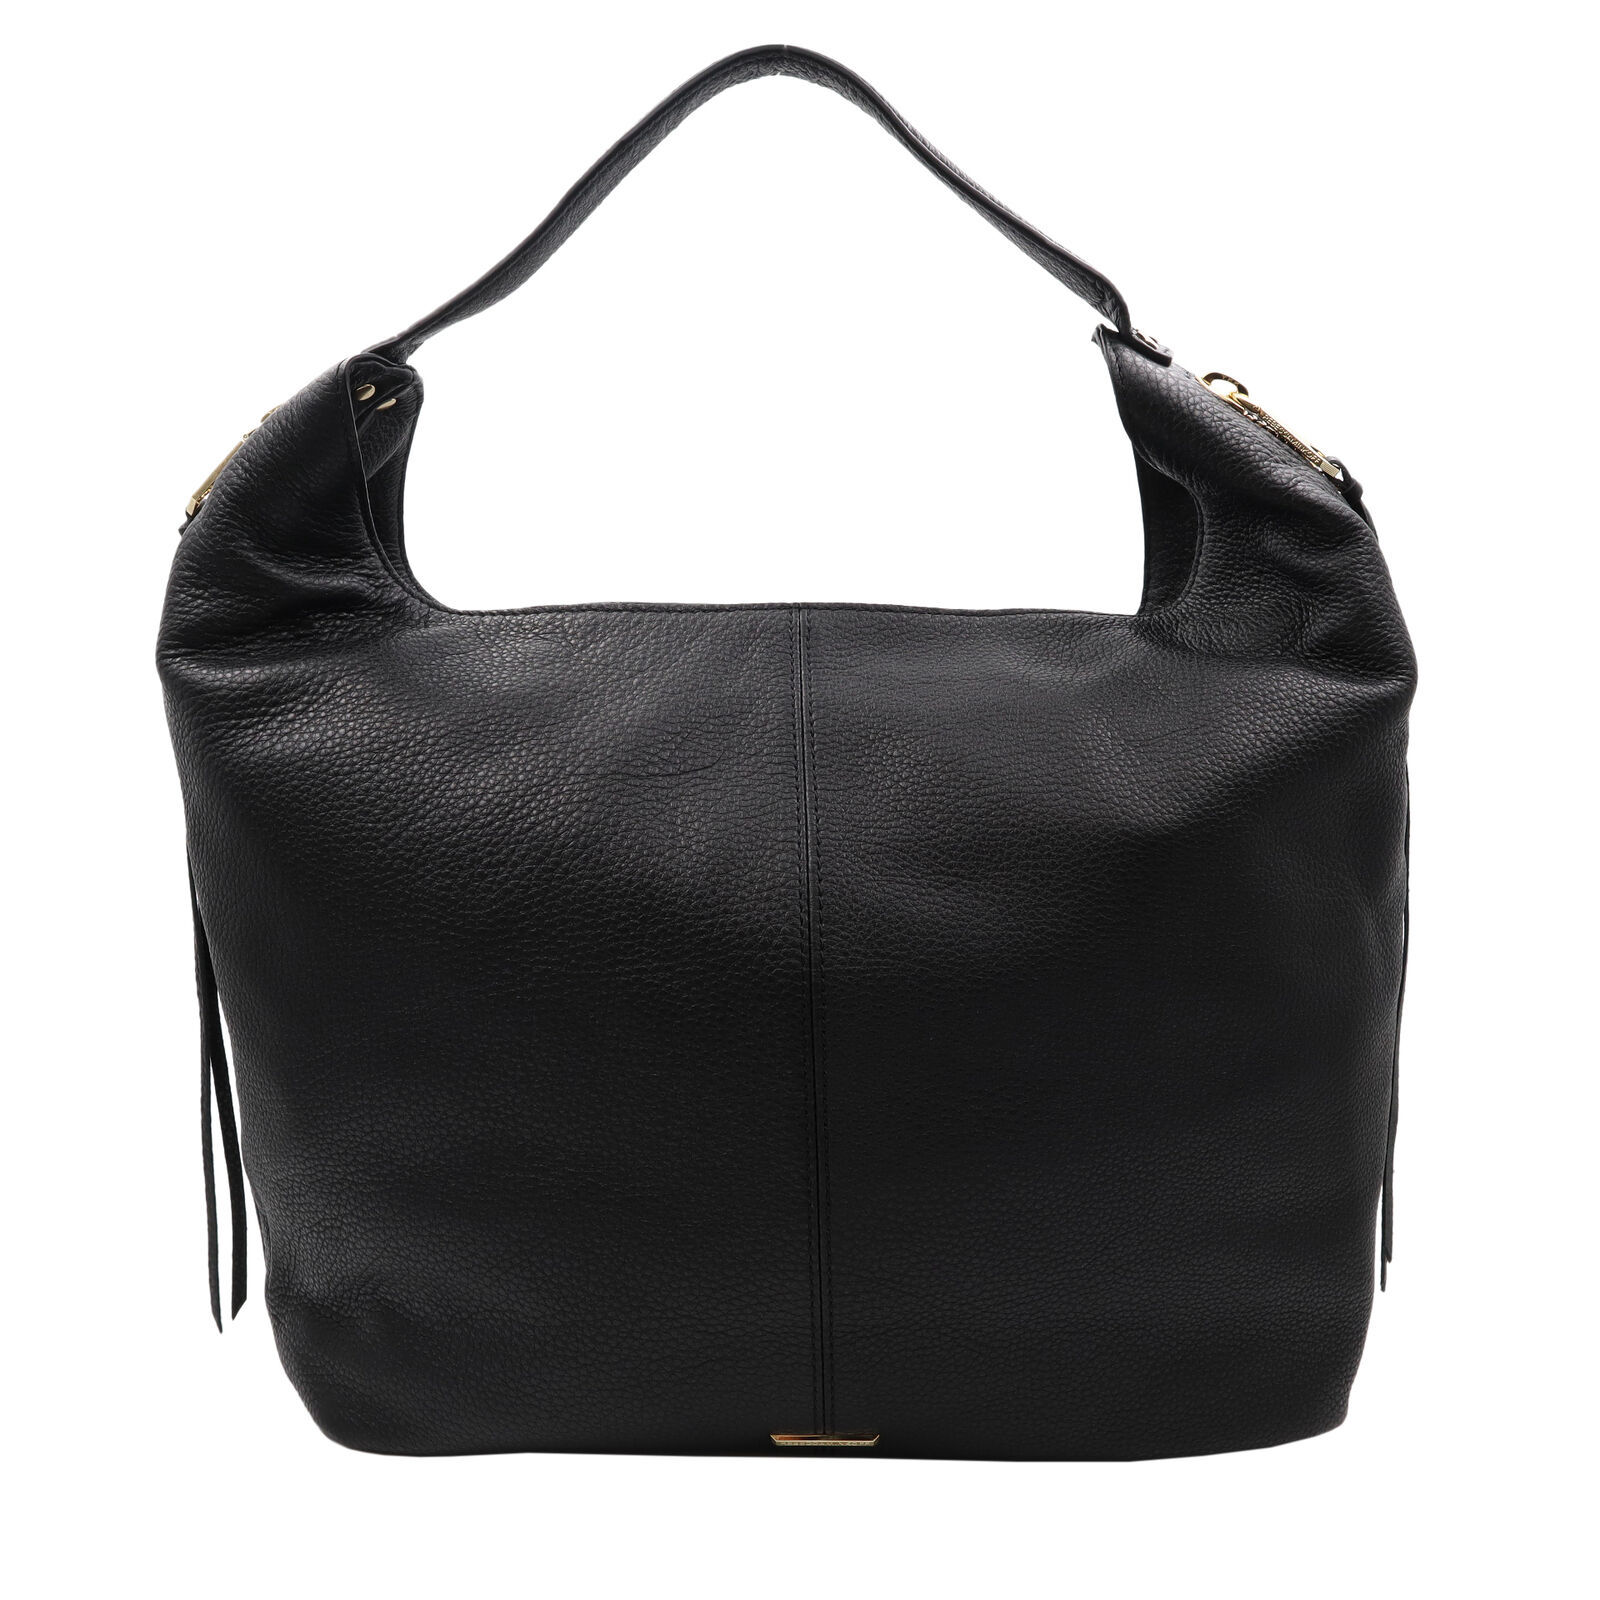 Primary image for Rebecca Minkoff HS161MOH17 Bryn Double-Zip Leather Hobo Ladies Bag